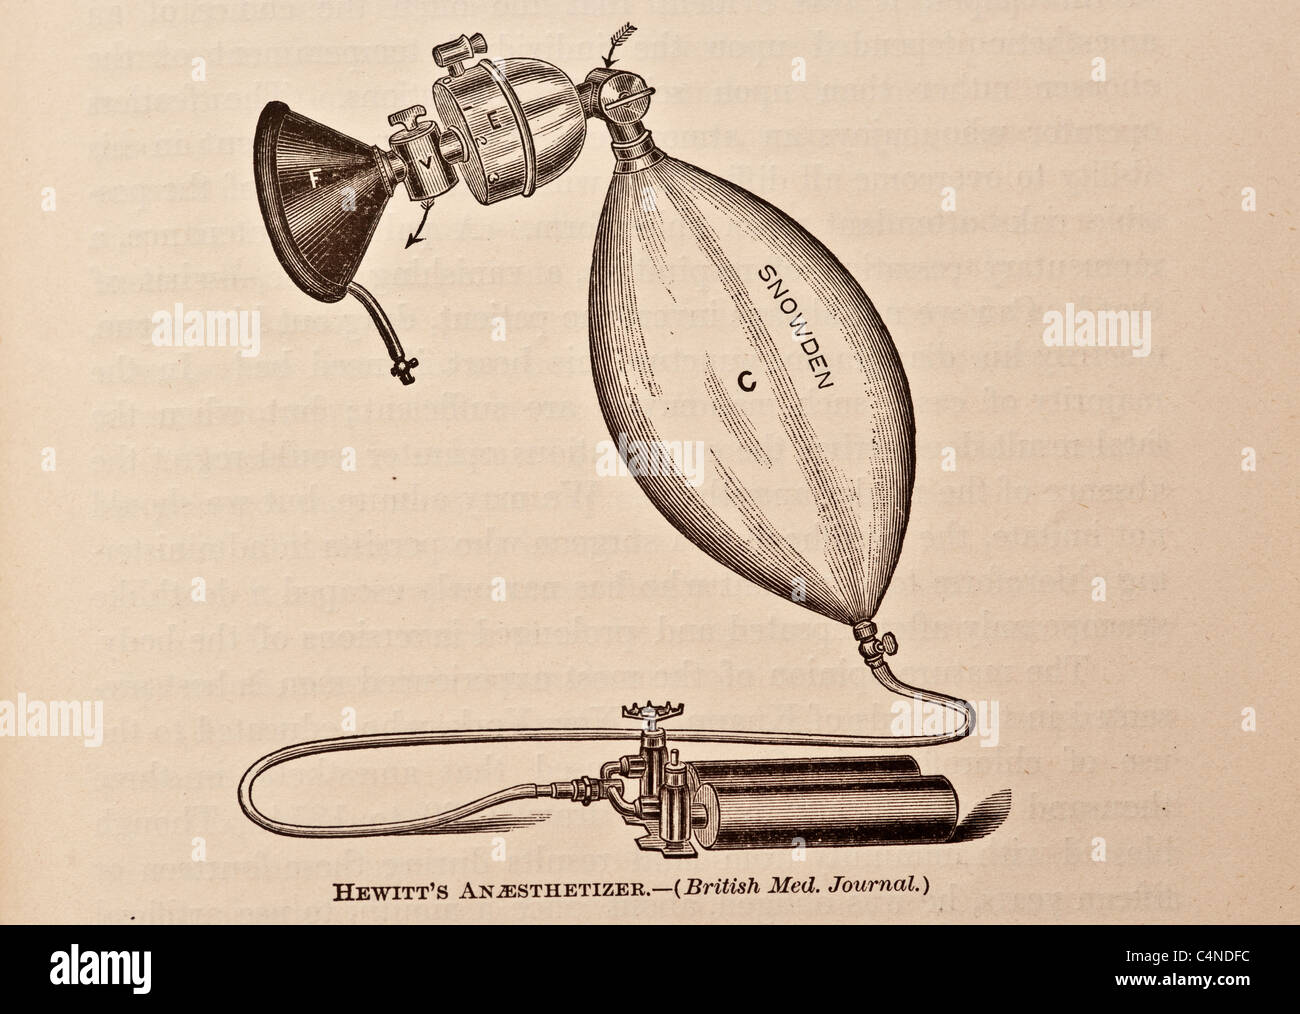 Antique Illustration of Surgical Tools and Medical Apparatus - Stock Image